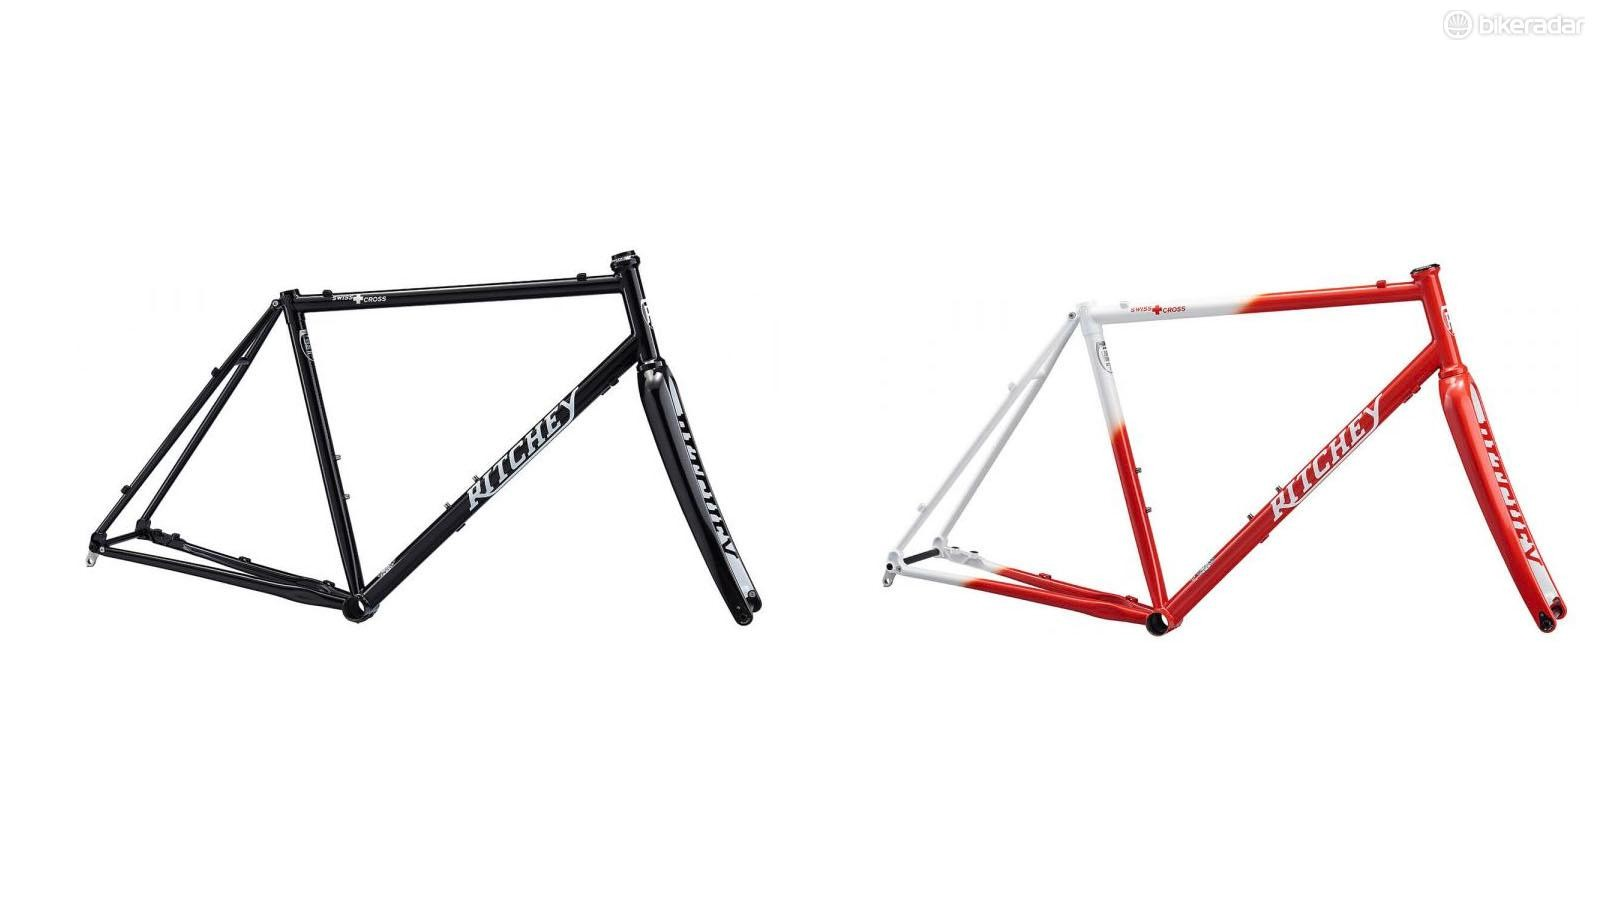 There will only be 100 red and white frames, while the black and the white paint job will be mass produced